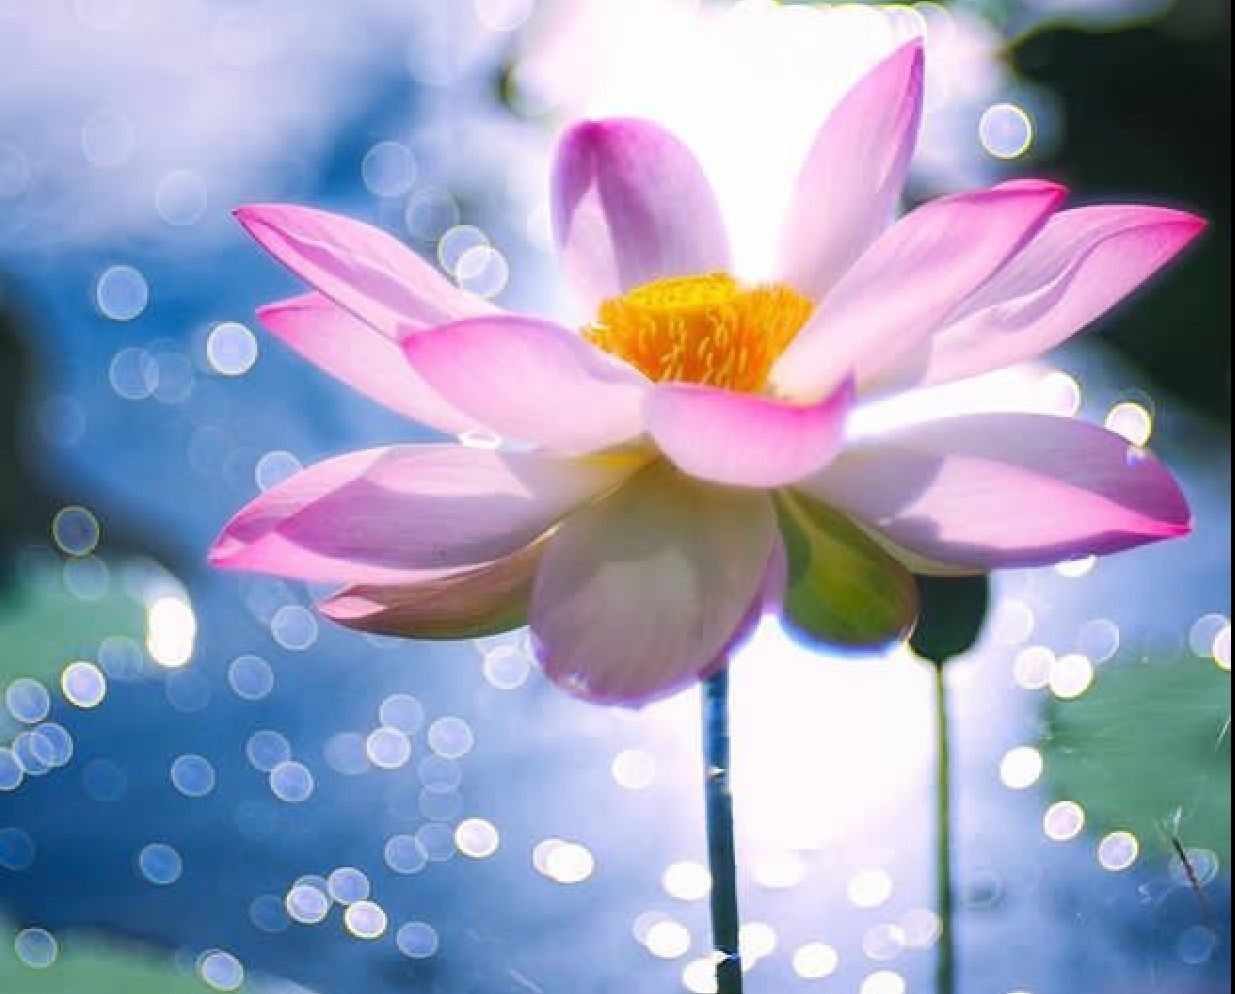 Pin by ellen marie on mindfulness pinterest lotus and flowers flowers izmirmasajfo